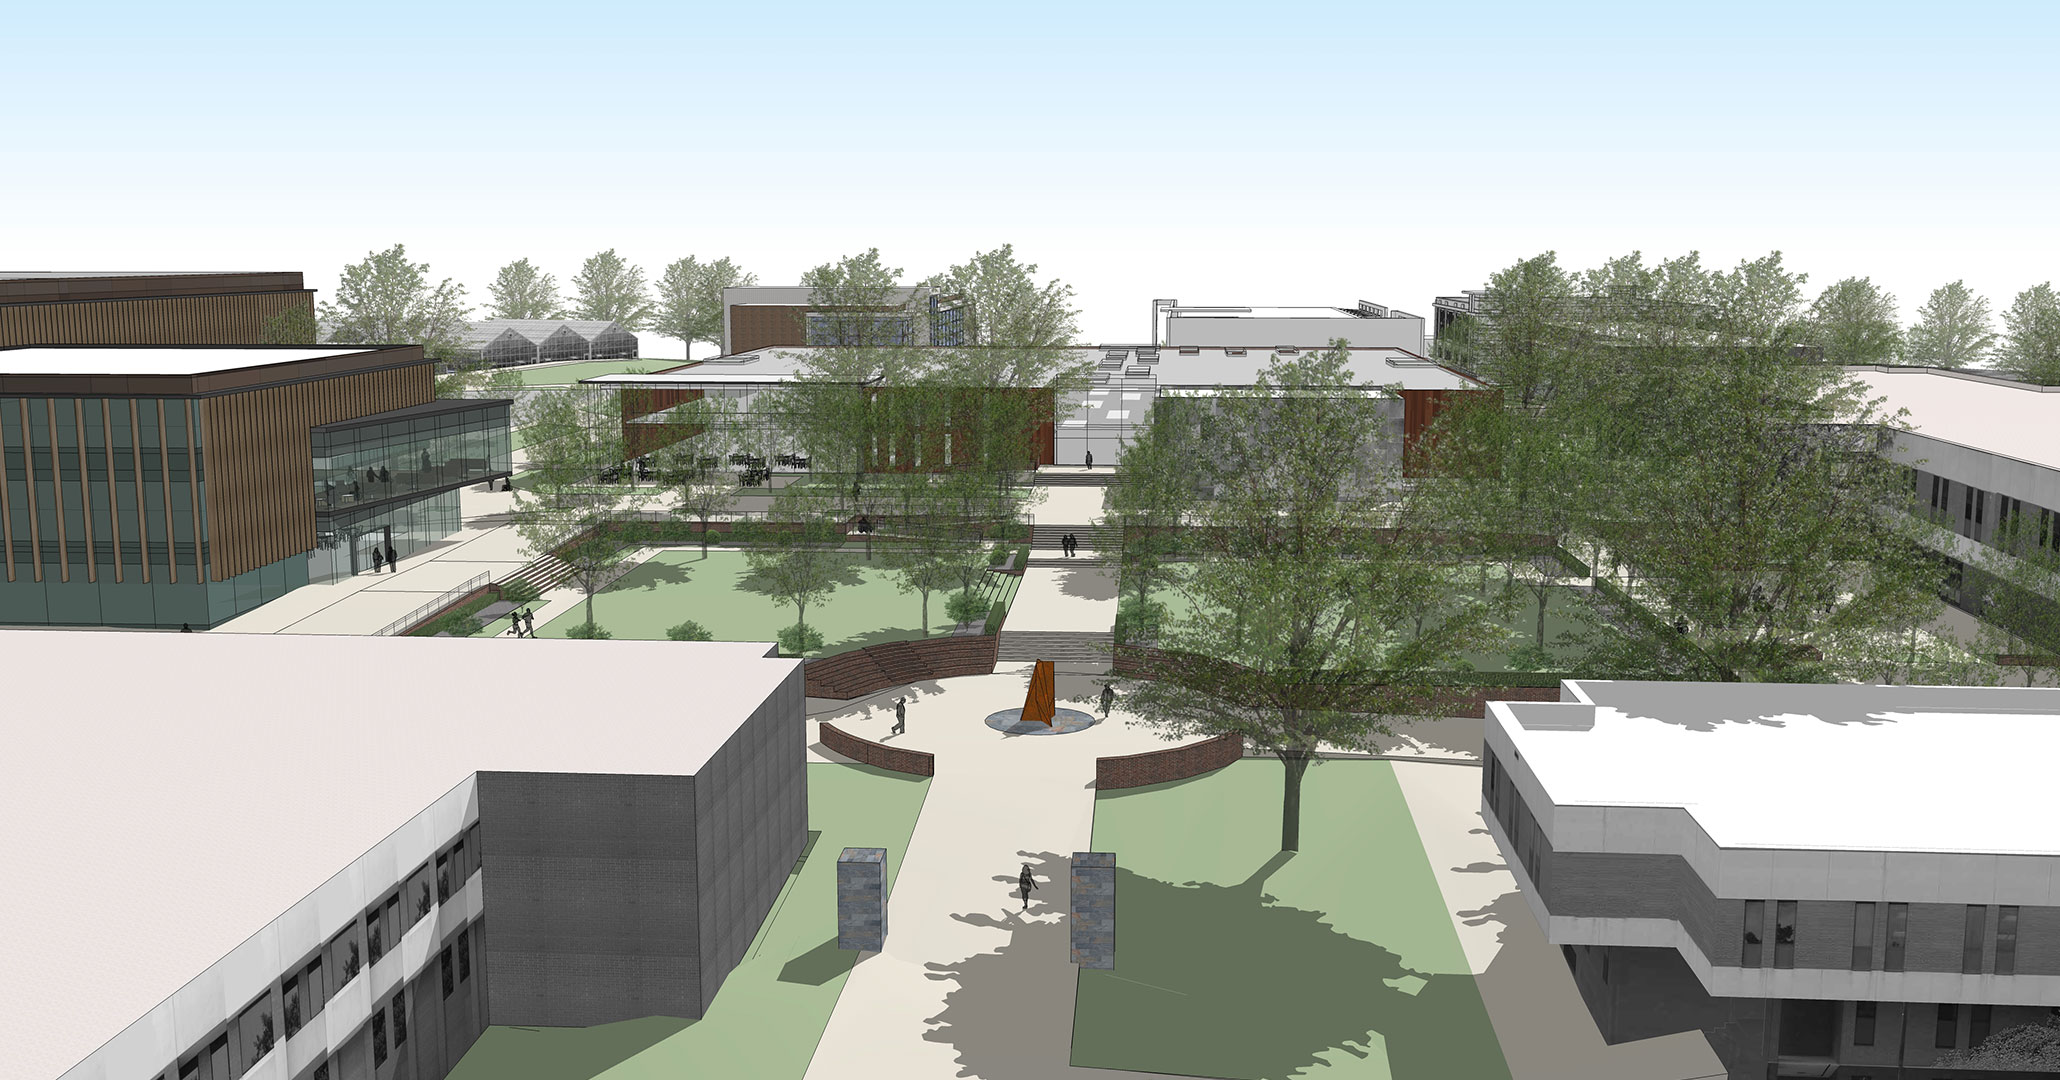 Clemson University hired Boudreaux architects to plan the exteriors and pathways of the Southeast Precinct.